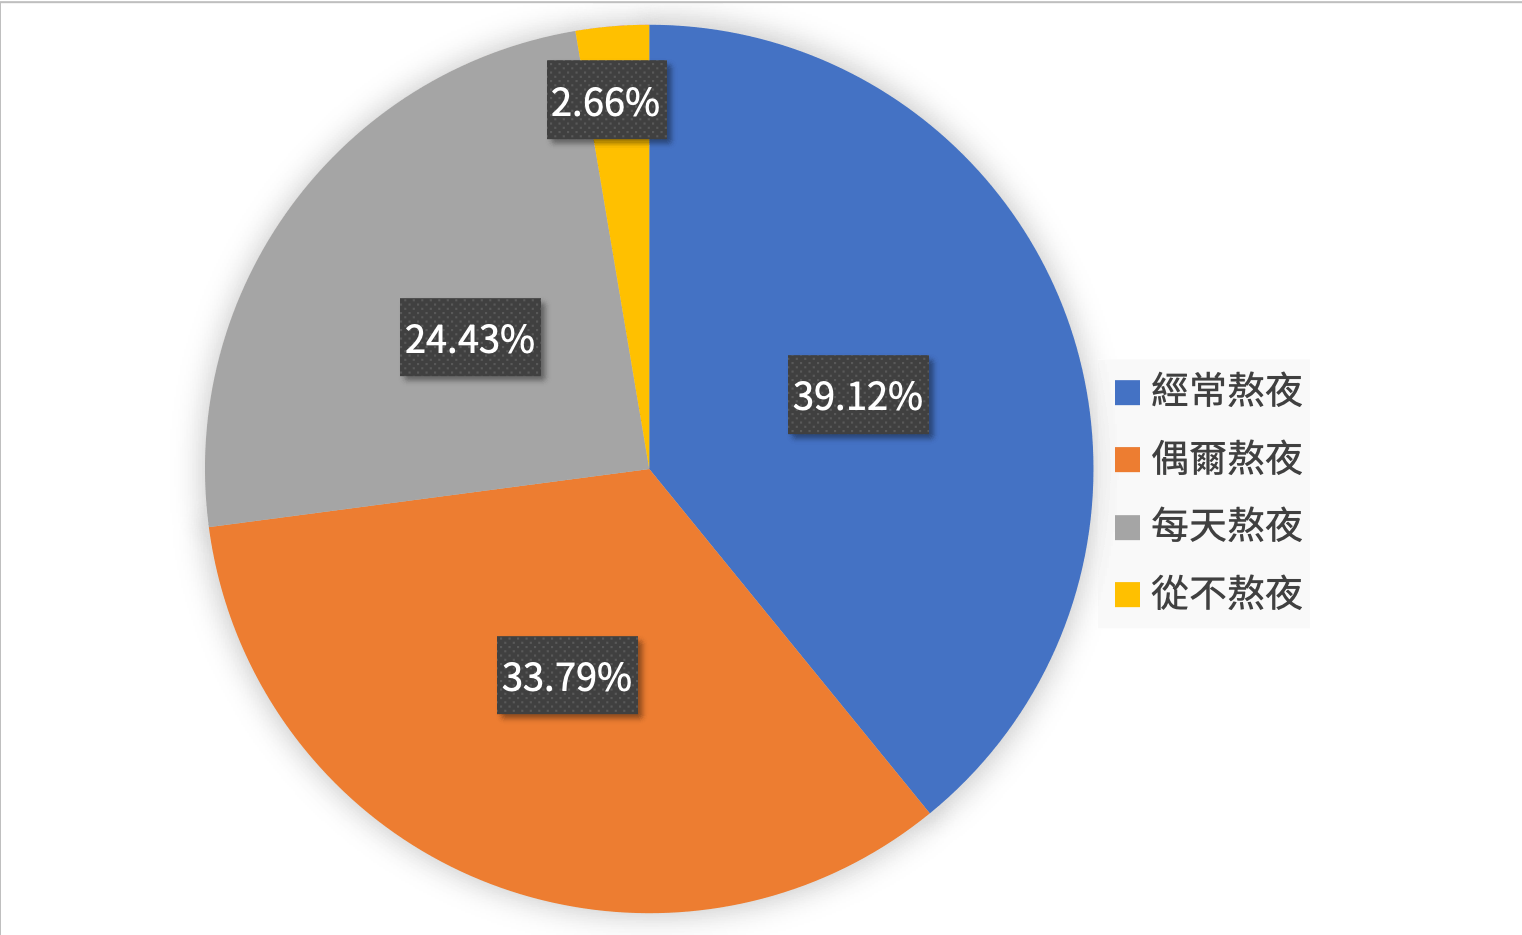 The proportion of college students staying up late, Source: China Youth International